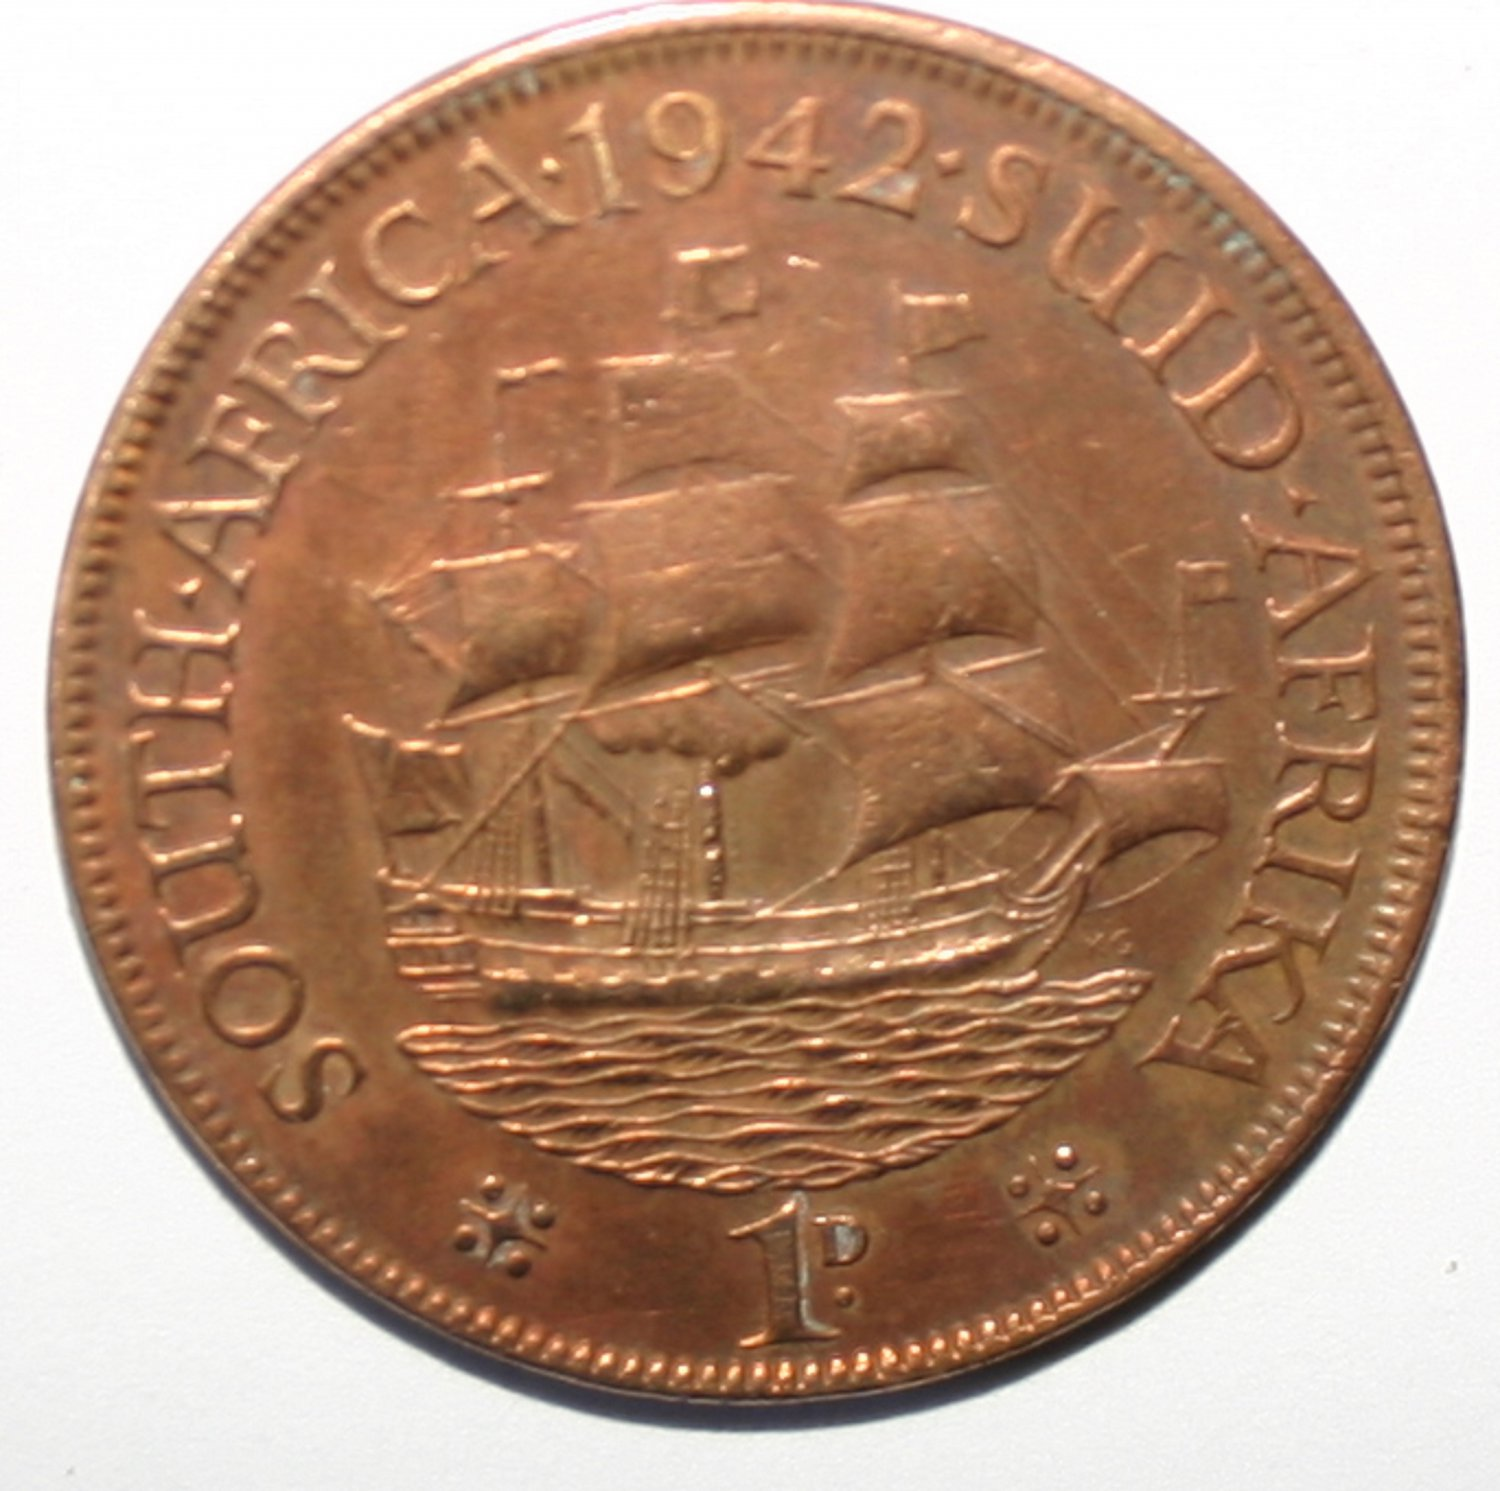 King George VI South Africa 1D Penny 1942 Coin